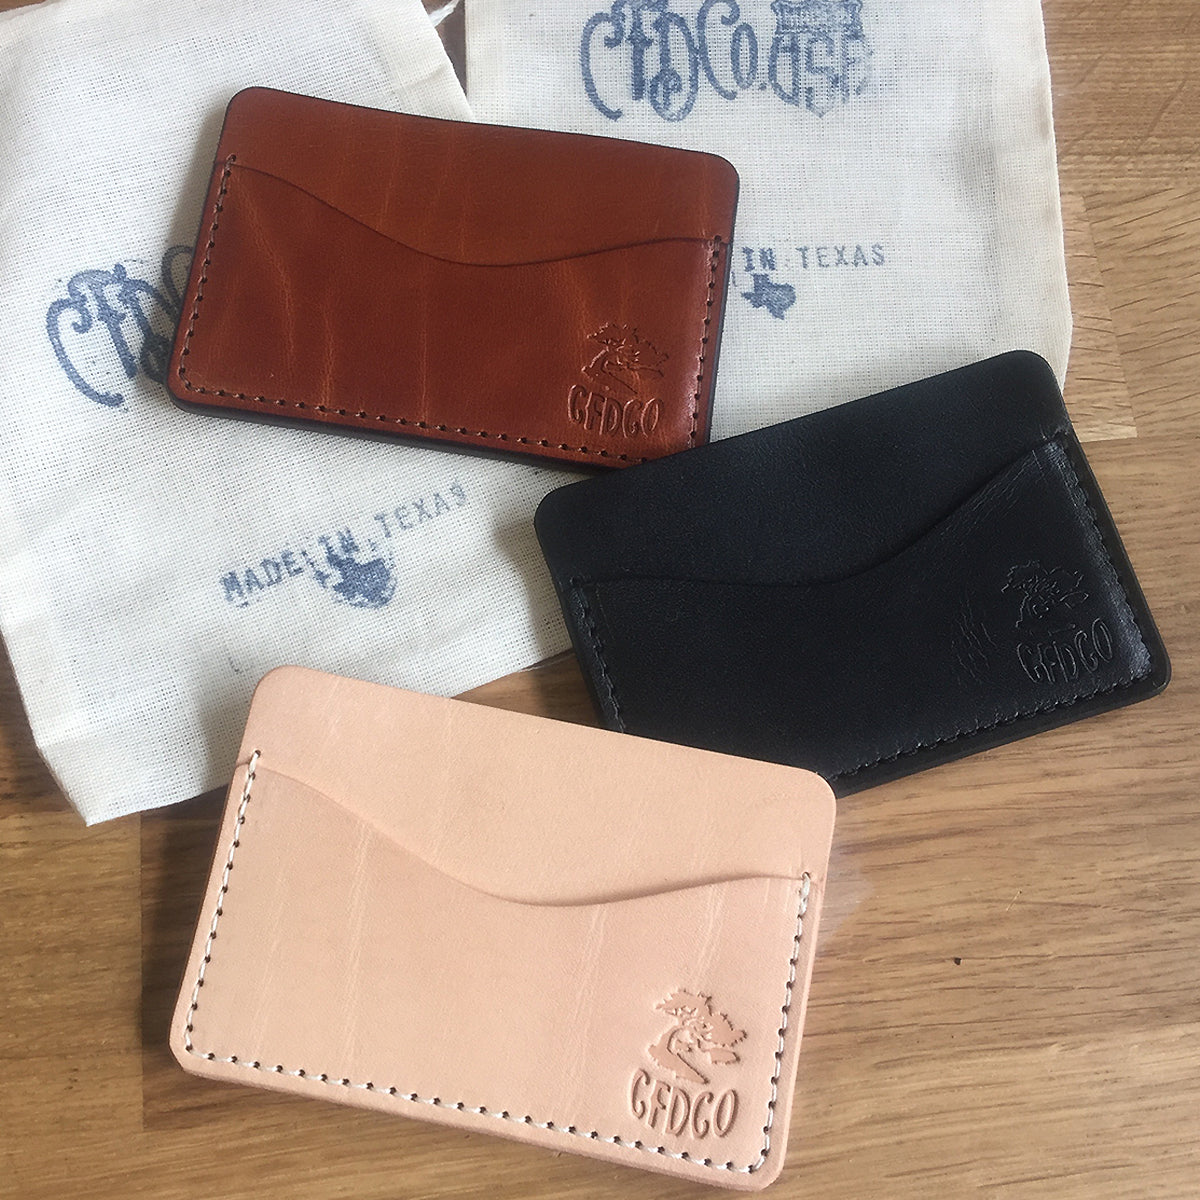 5oz TEXAS Leather Credit Card Wallet BLACK